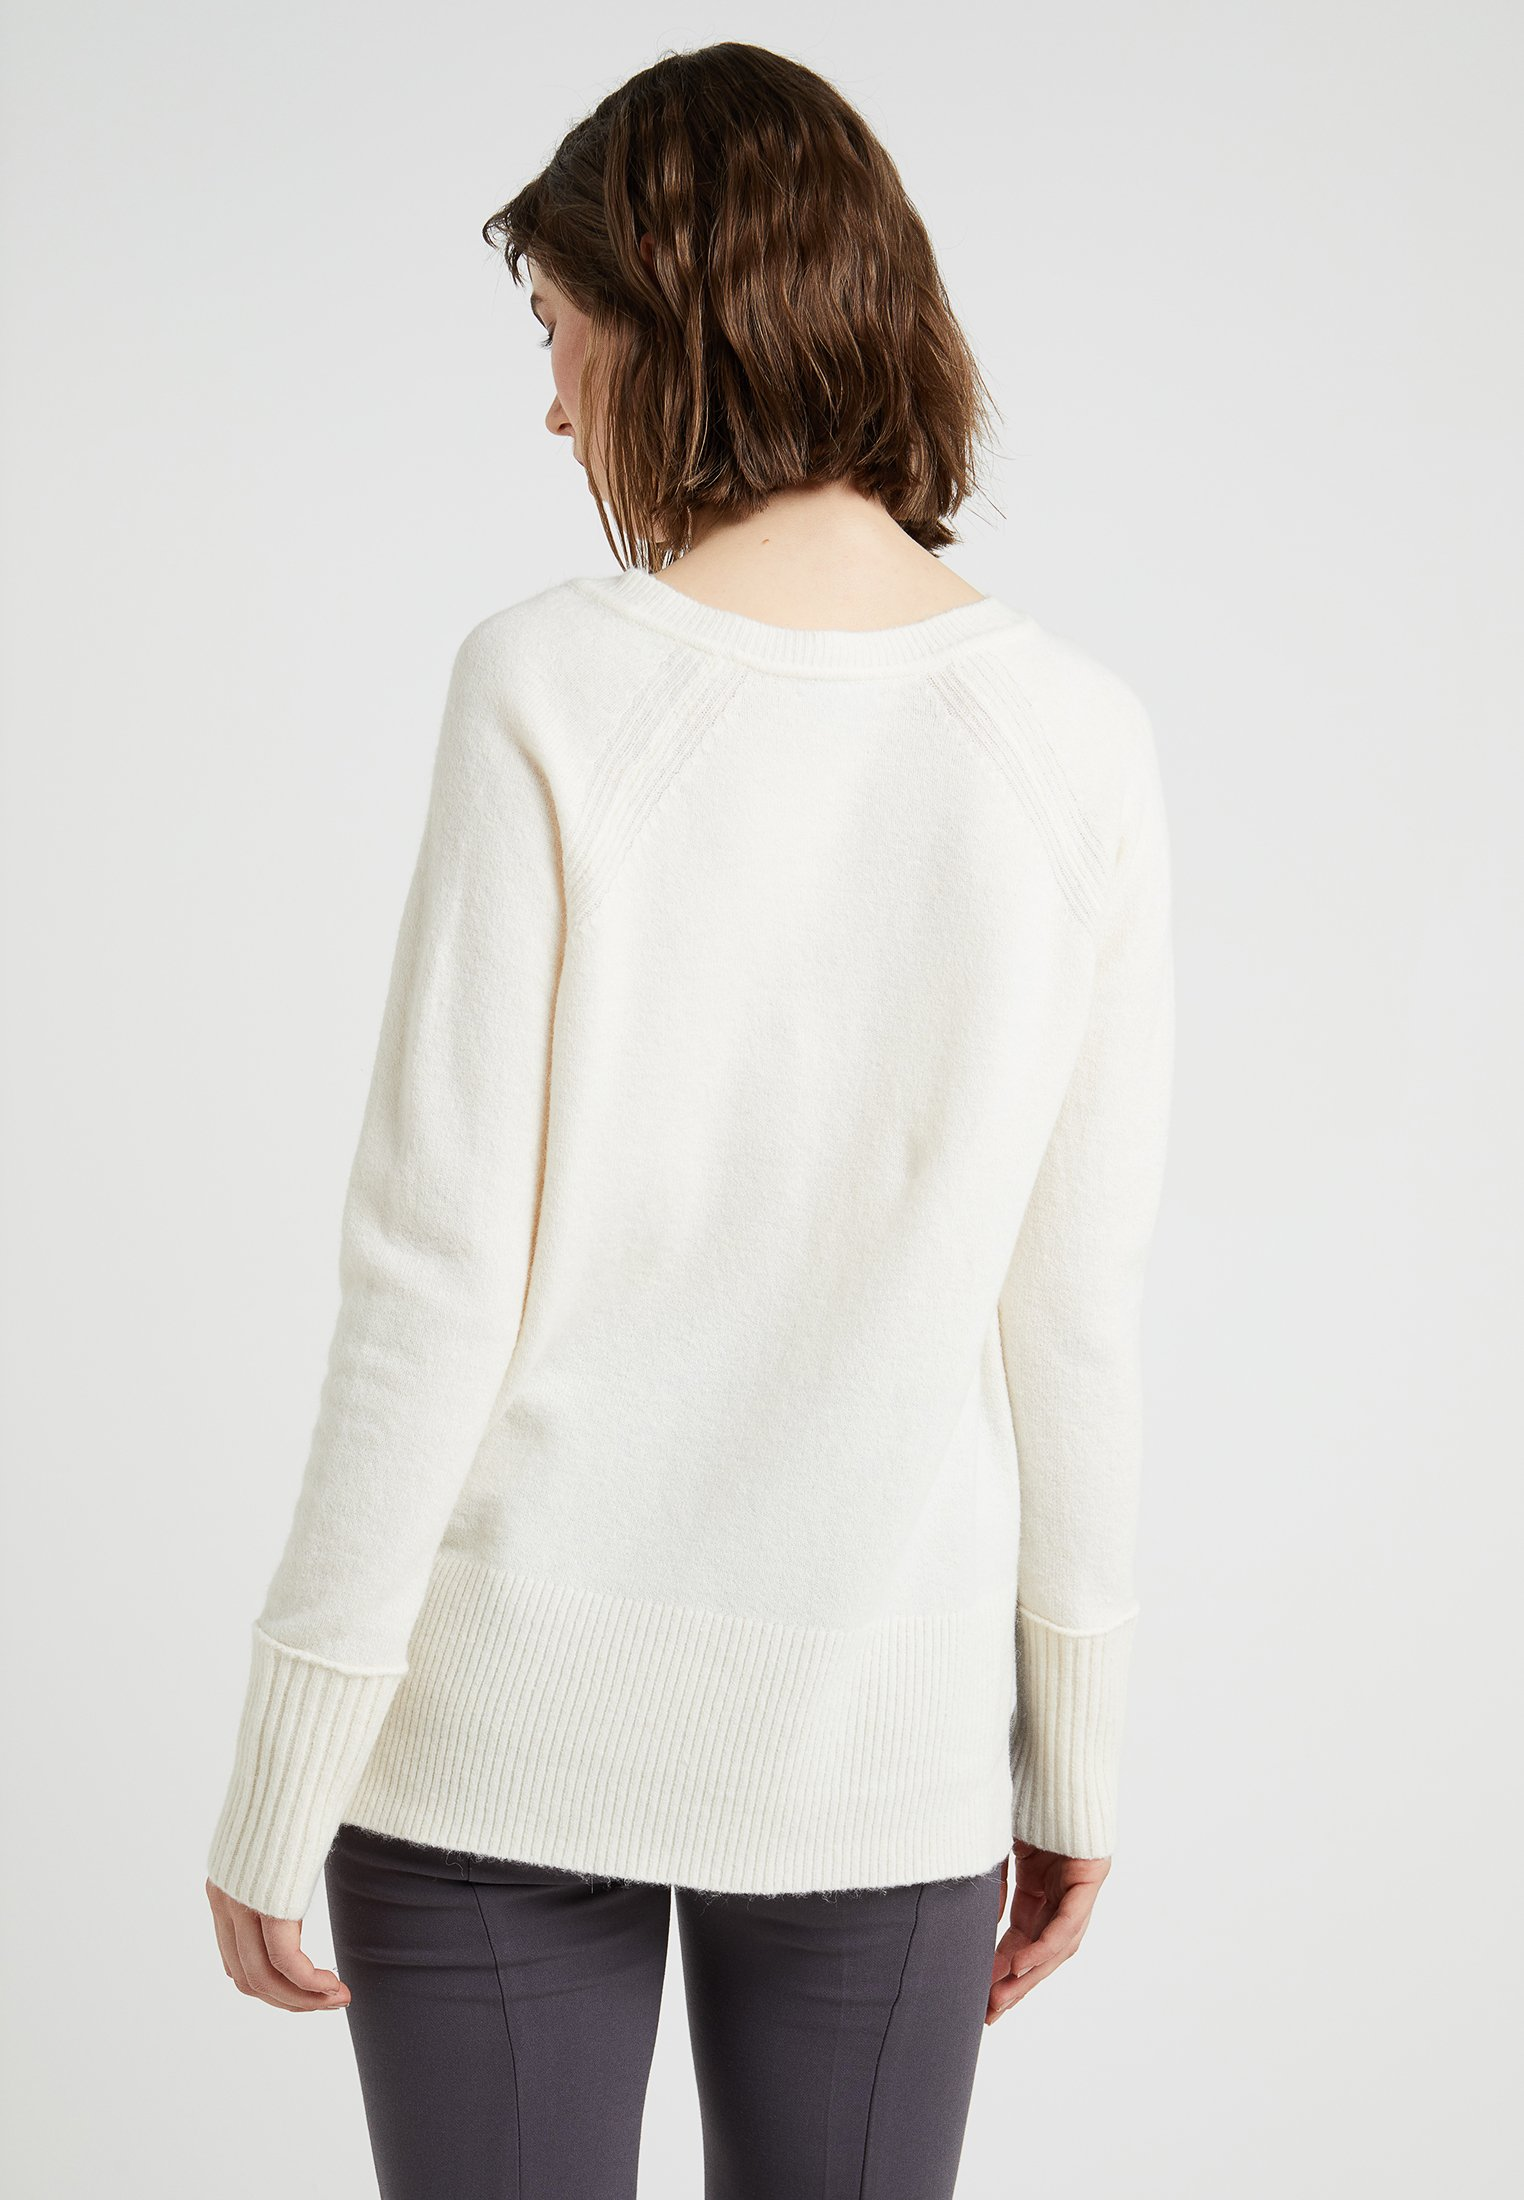 J crew neckPullover V Supersoft Natural qULSpjMVGz